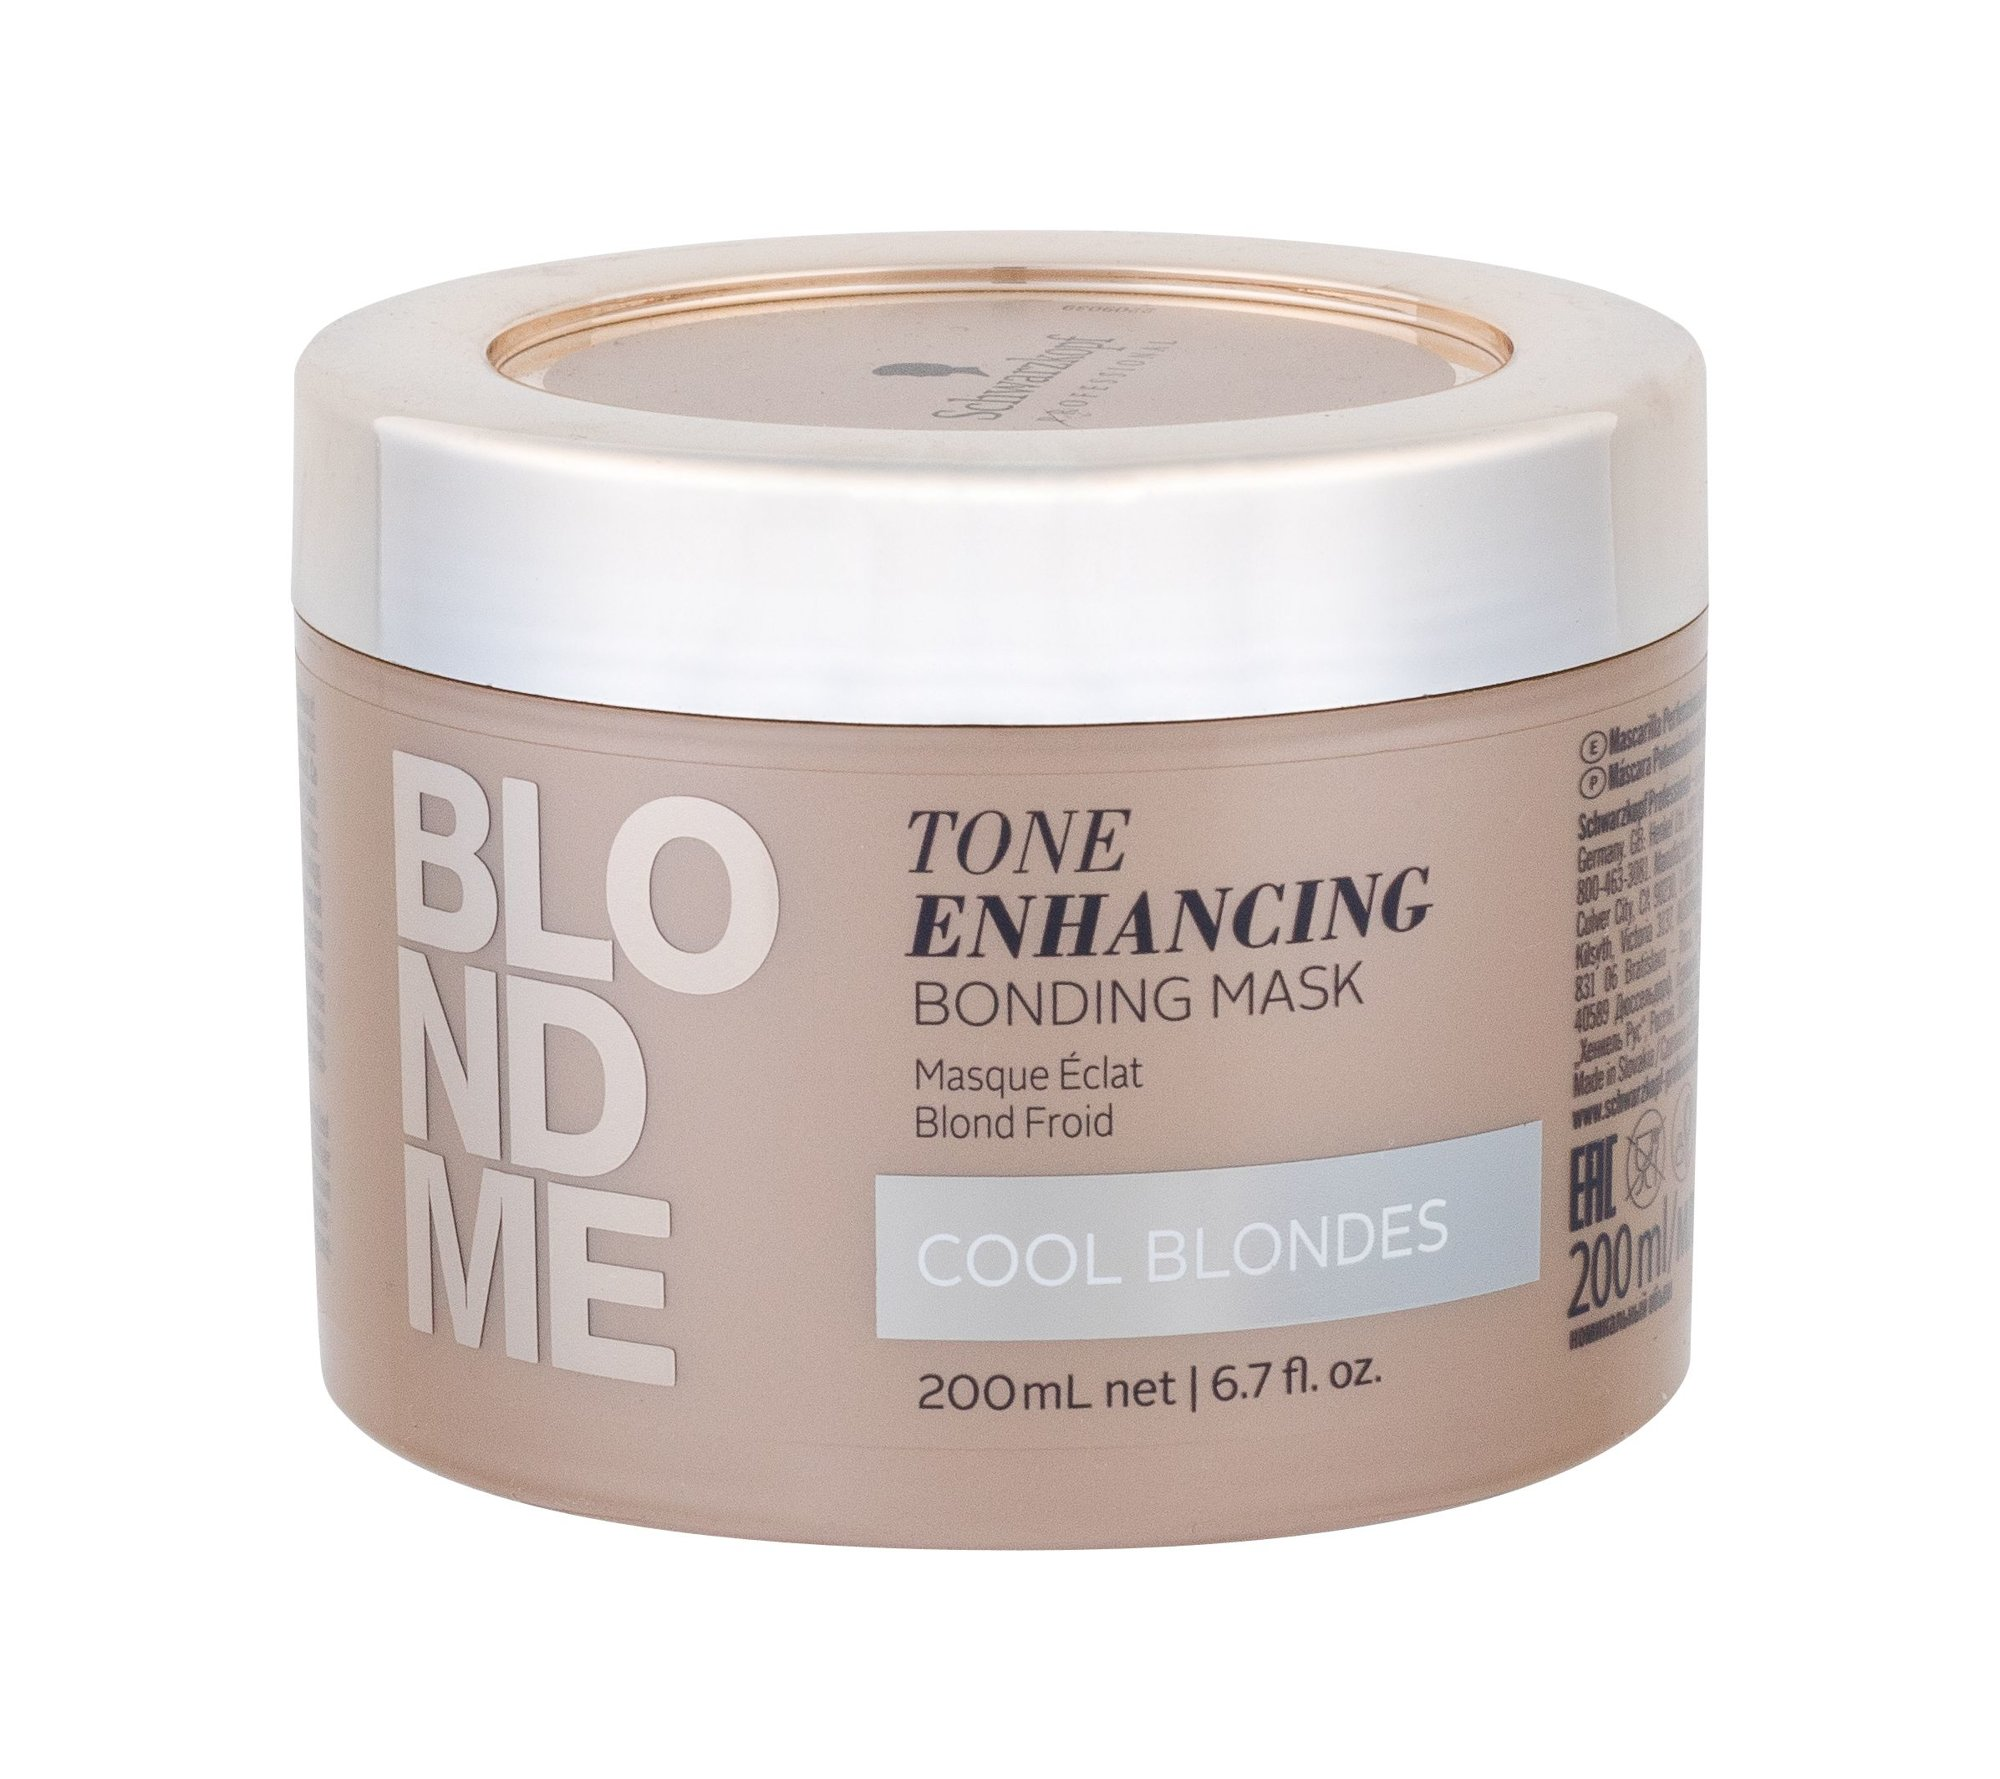 Schwarzkopf Blond Me Hair Mask 200ml Cool Blondes